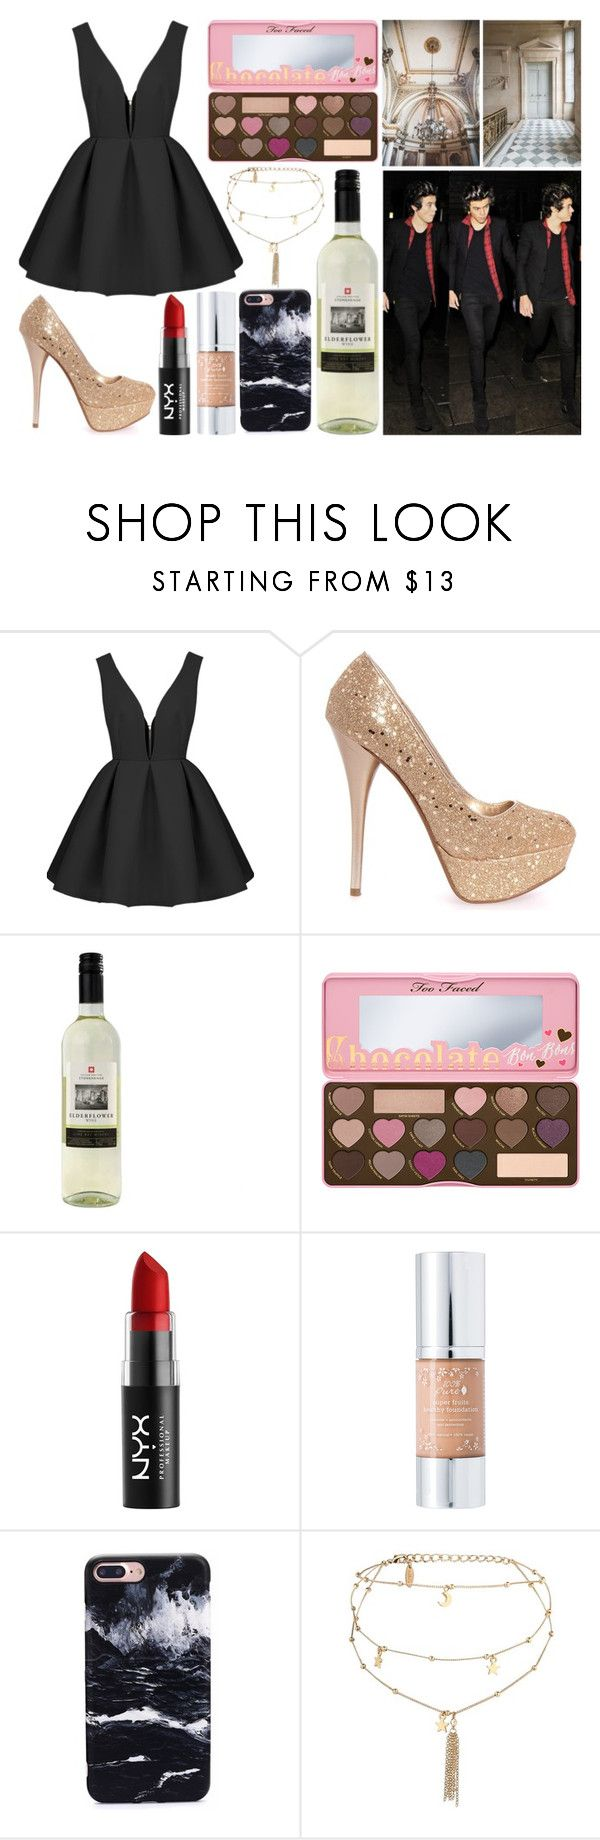 """Untitled #807"" by mariele-jule ❤ liked on Polyvore featuring Trianon, Too Faced Cosmetics, NYX, 100% Pure and Ettika"